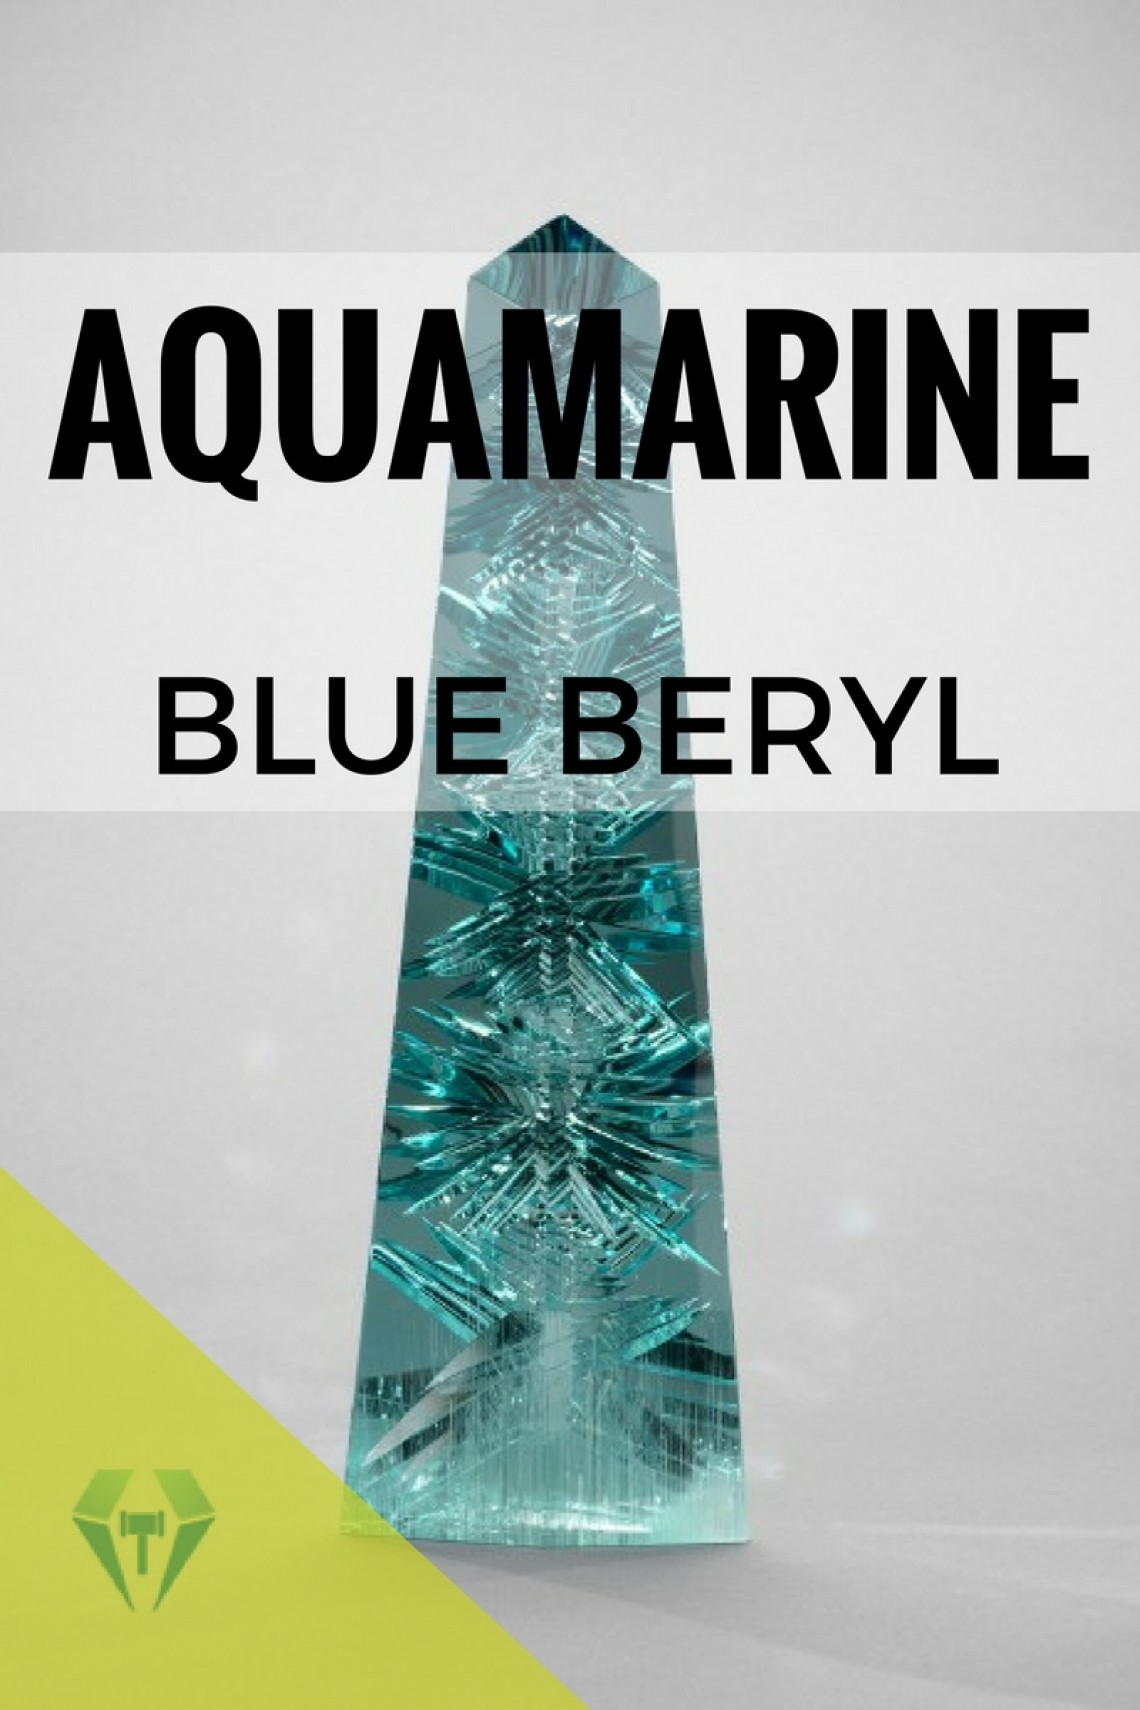 Aquamarine Information - The Blue Beryl